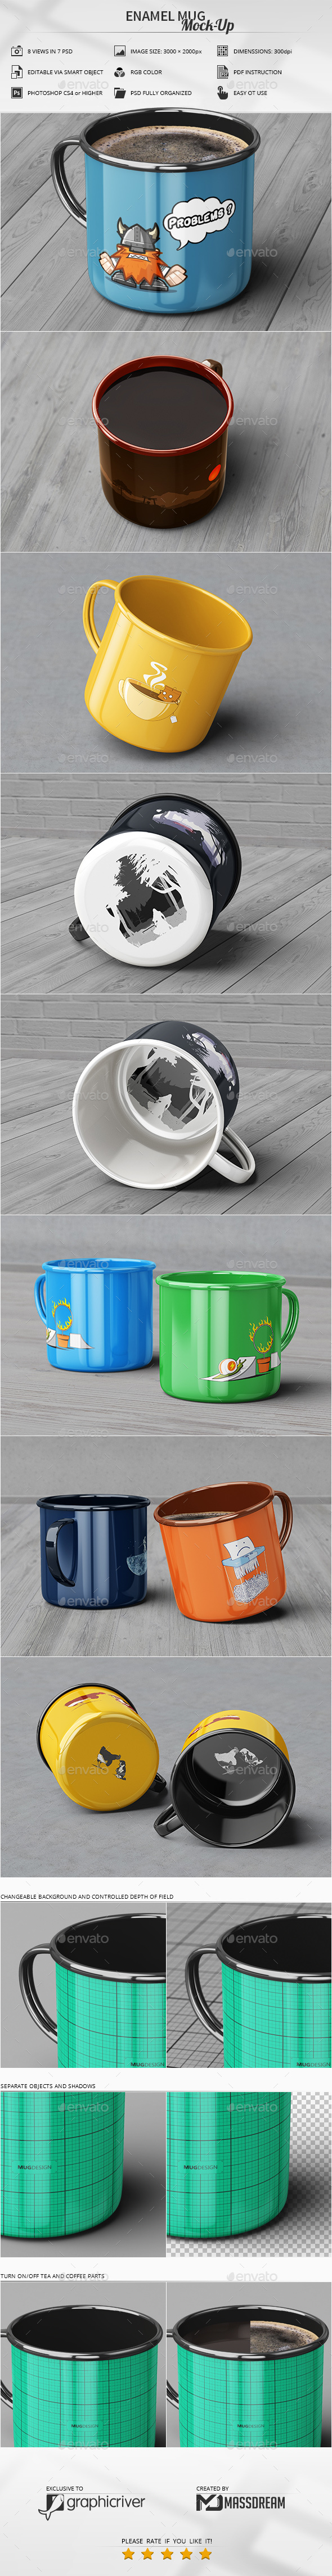 Enamel Mug Mock-Up - Product Mock-Ups Graphics